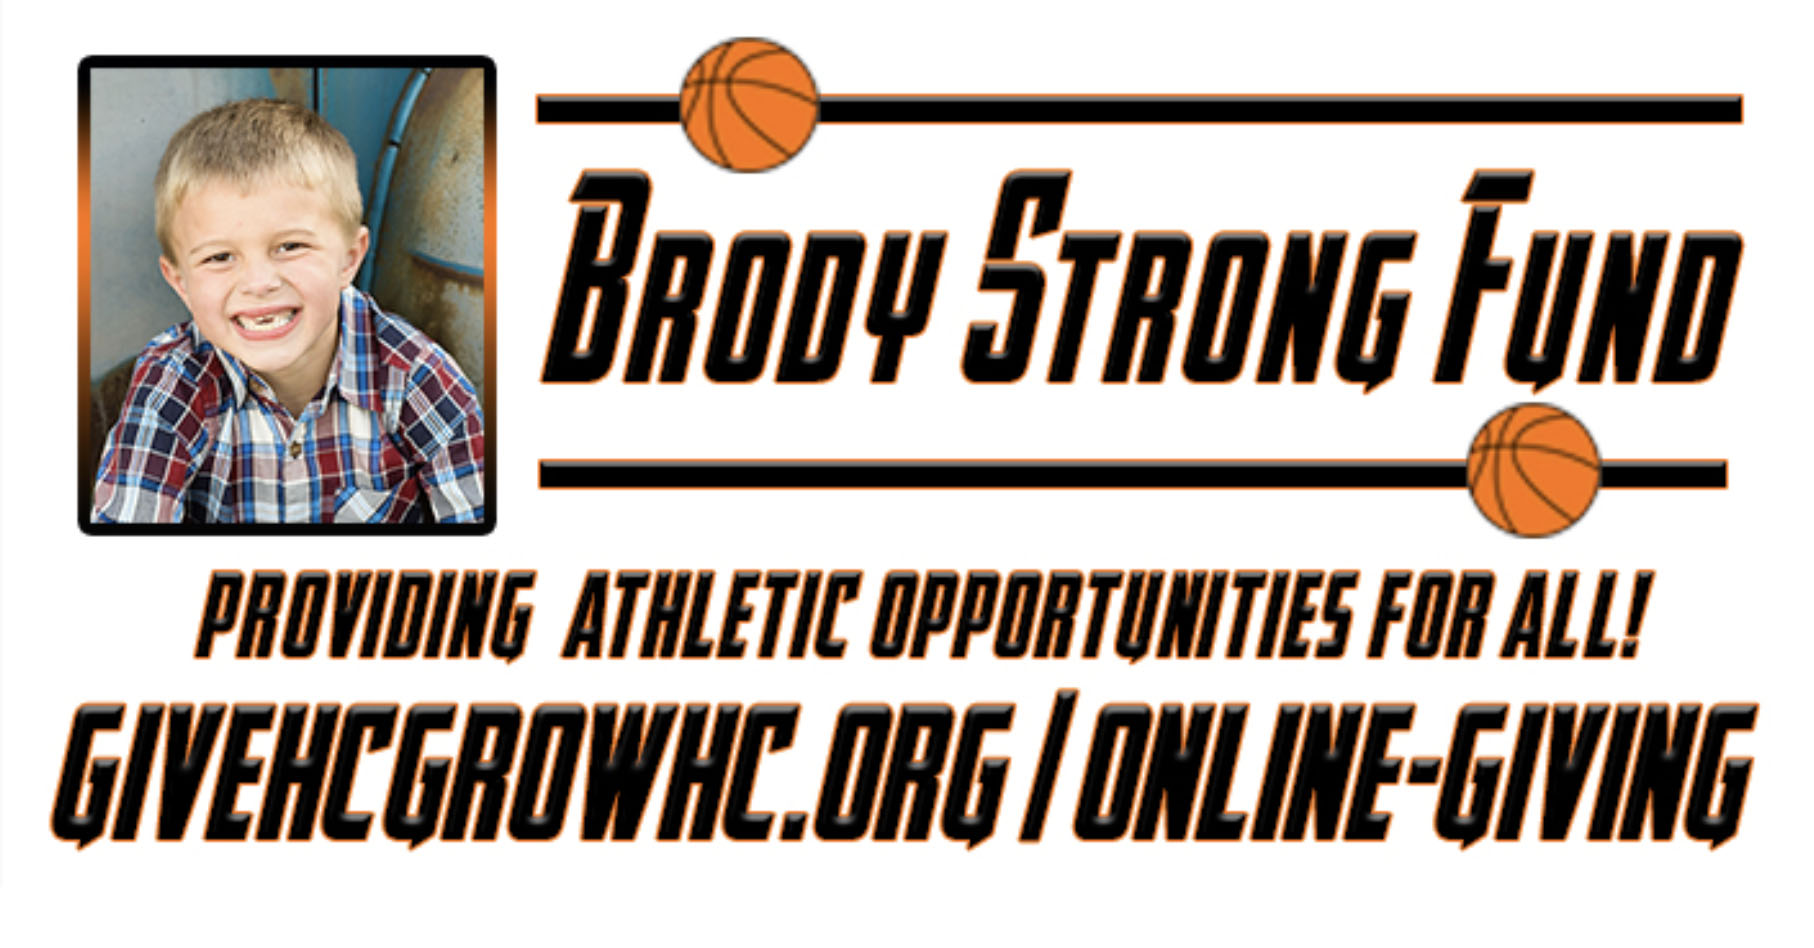 The Brody Strong Fund